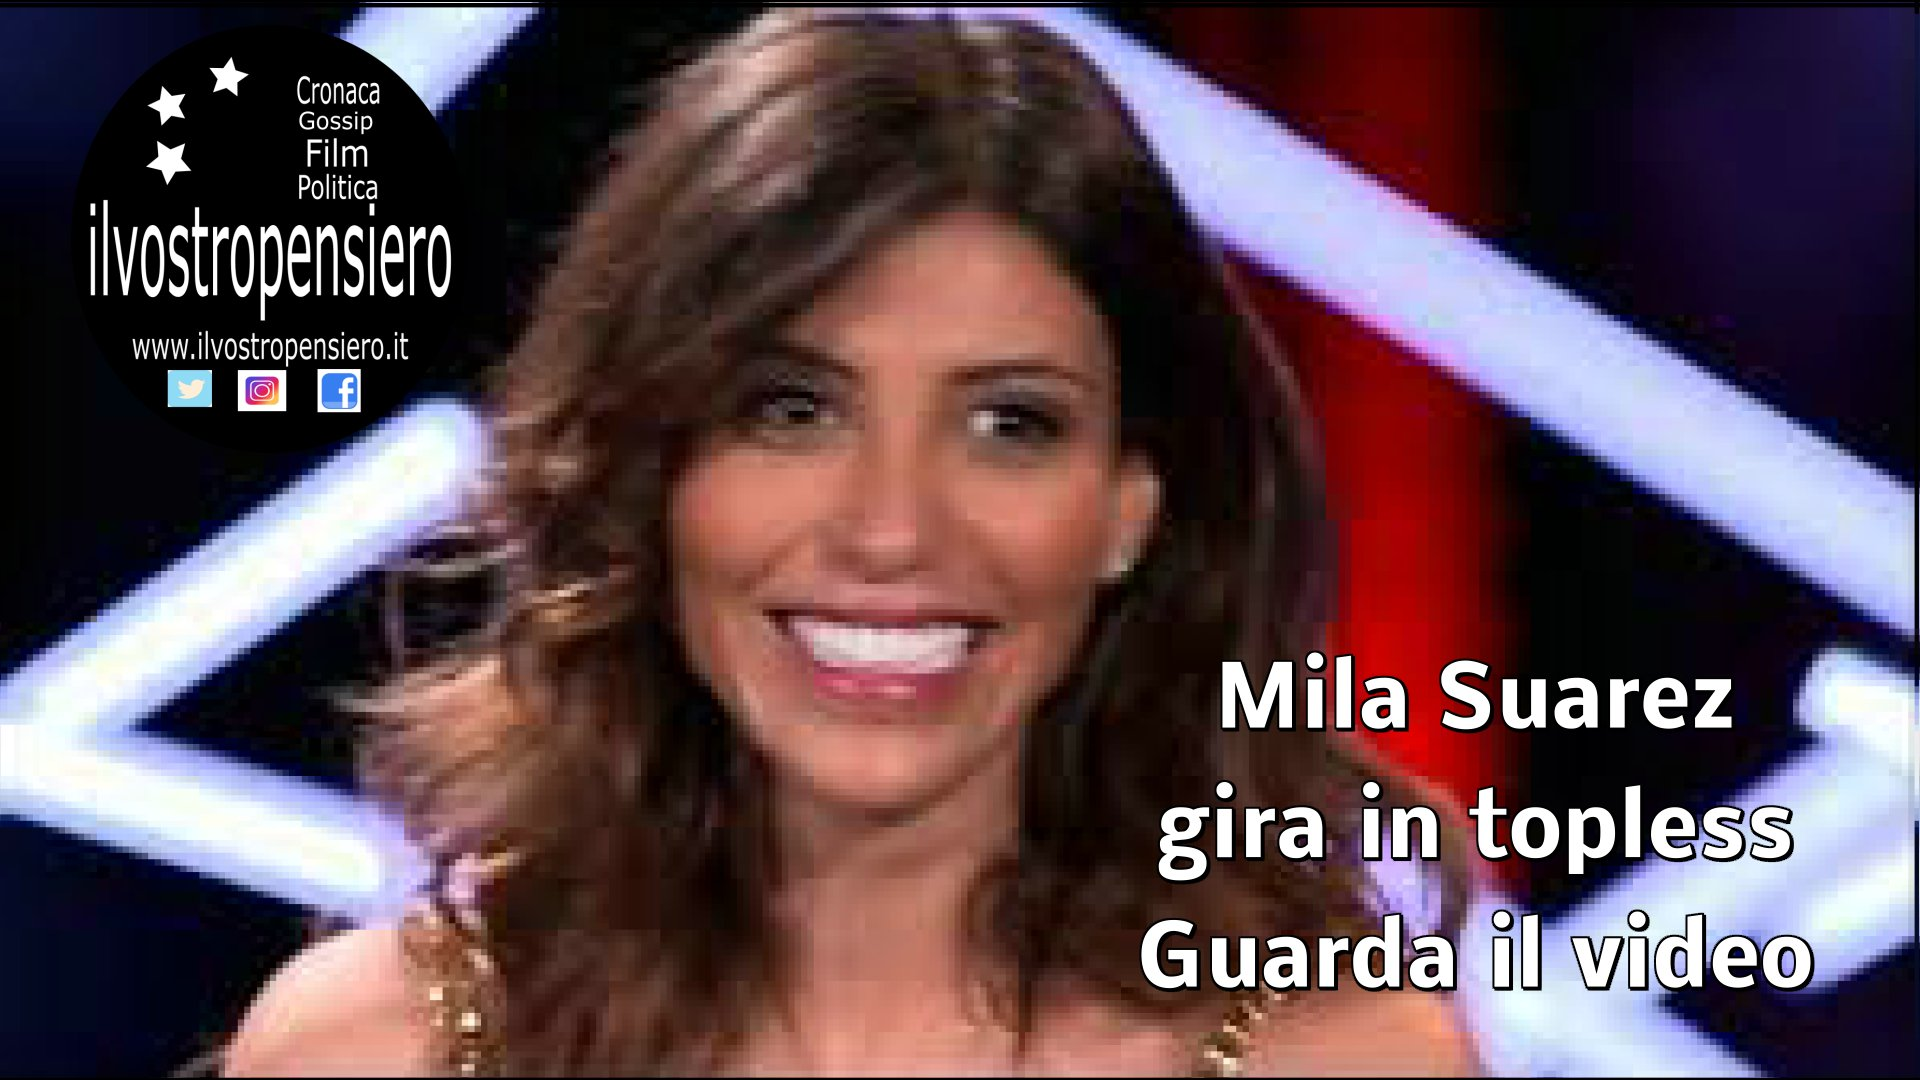 Grande Fratello 16: anche Mila Suarez gira in casa in topless (guarda il video)